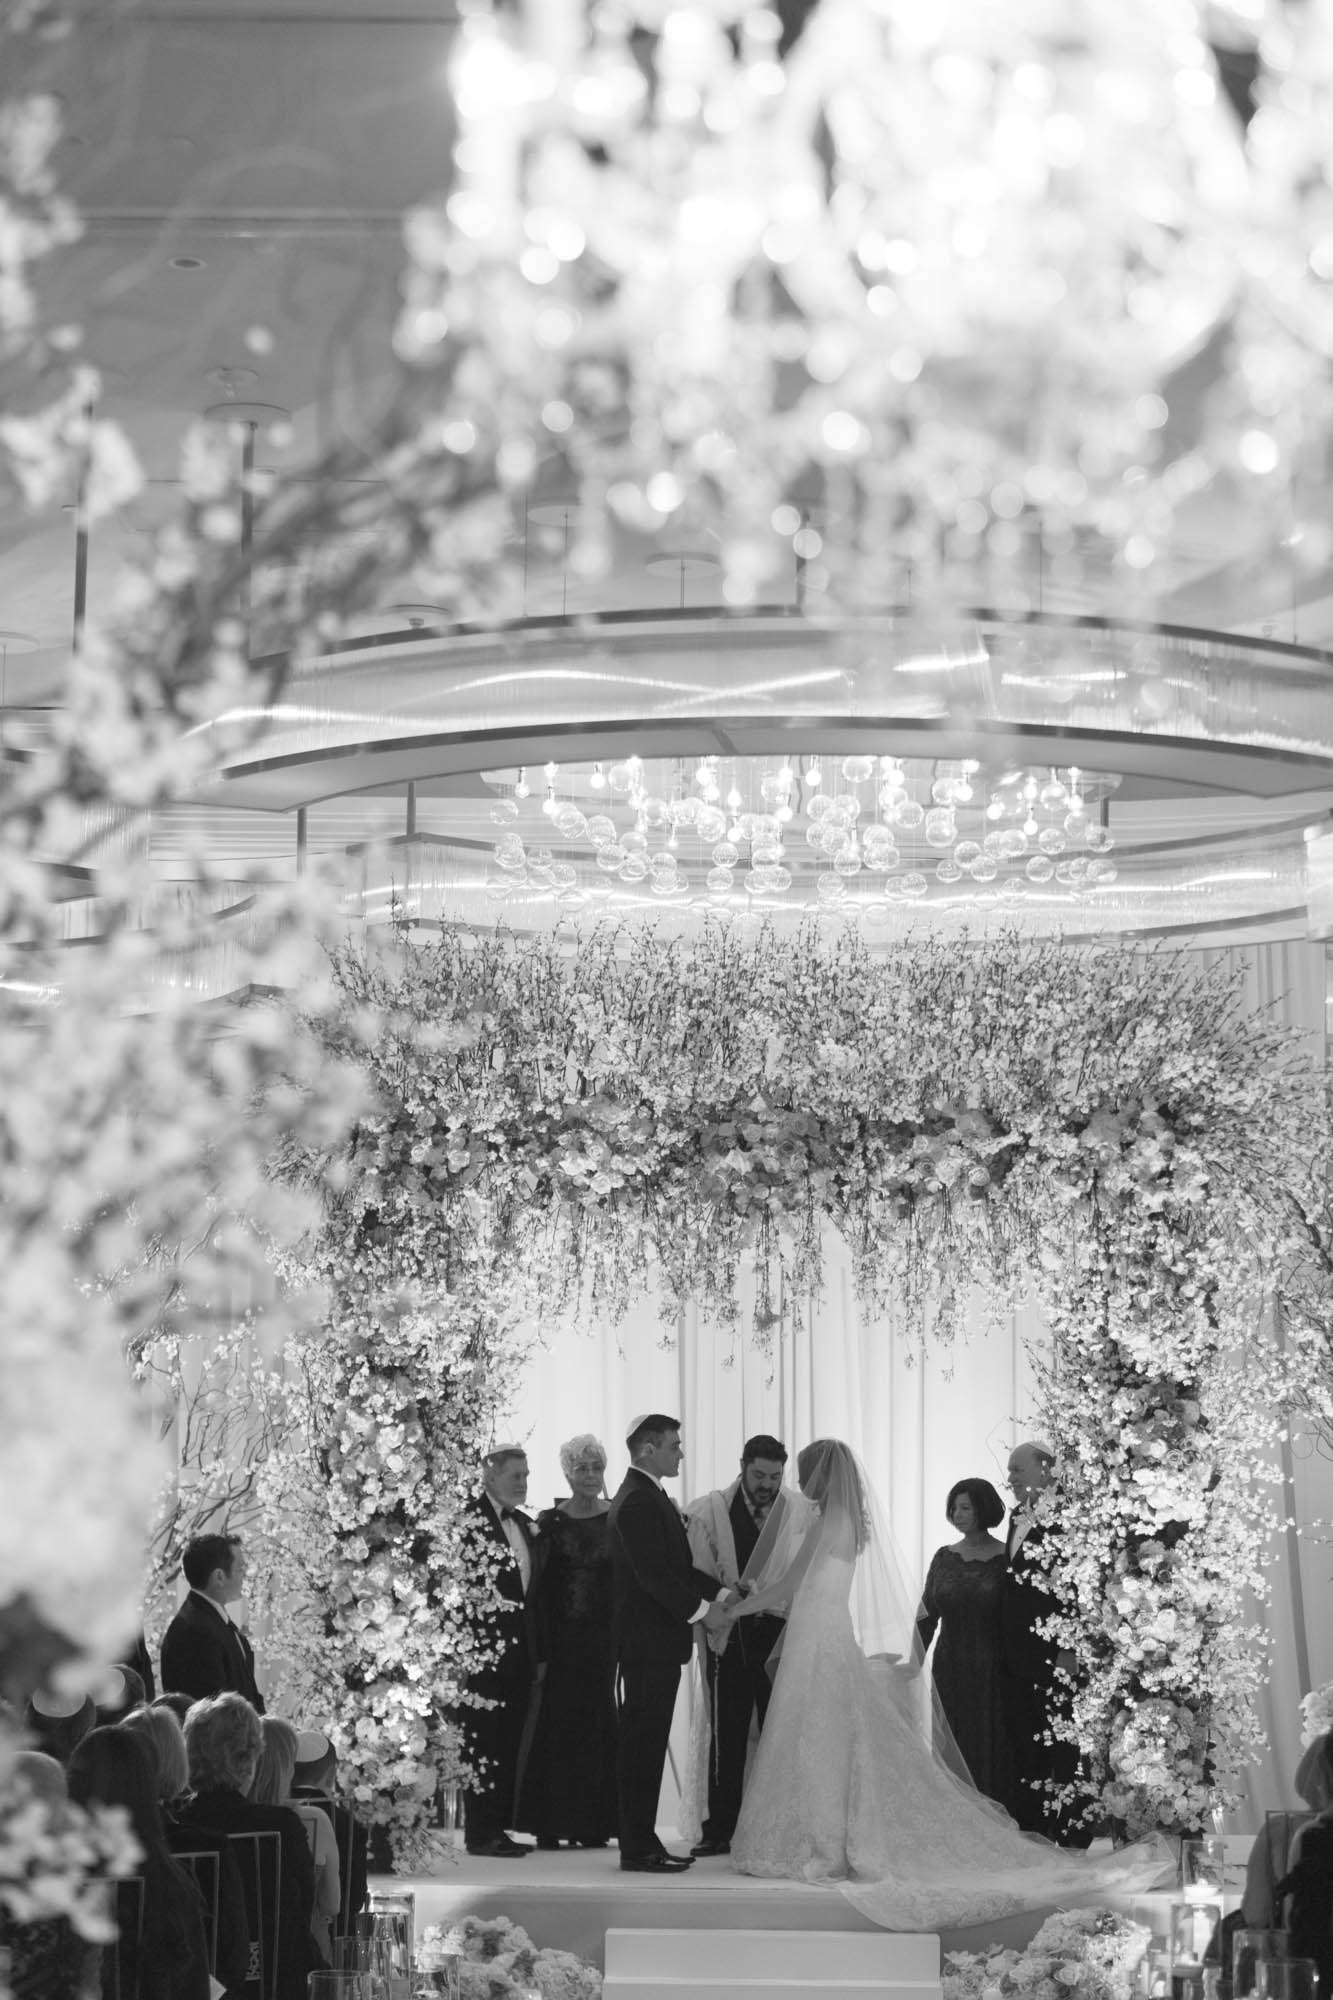 CREDITS:    PHOTOGRAPHY •  AltF Photography  ,PLANNING •  Andrea Eppolito Events  ,FLORAL AND DECOR DESIGN •  Destinations by Design  ,VENUE AND CATERING •  Mandarin Oriental, Las Vegas  ,STATIONERY DESIGN •  Paper and Home  ,  BRIDE'S GOWN • Vera Wang ,SHOES • Jimmy Choo ,  GROOM'S FORMAL WEAR •  Vera Wang  ,  ENGAGEMENT RING • Delage Jewelers ,  WEDDING BANDS • T-Birds Jewels   ,  CAKE DESIGN • Mandarin Oriental Las Vegas , DRAPING;  DANCE FLOOR DESIGN AND PRODUCTION • Destination by Design ,  LIVE EVENT ARTIST • Sam Day ,ENTERTAINMENT  • Lucky Devils Band ,CINEMATOGRAPHY • Something New